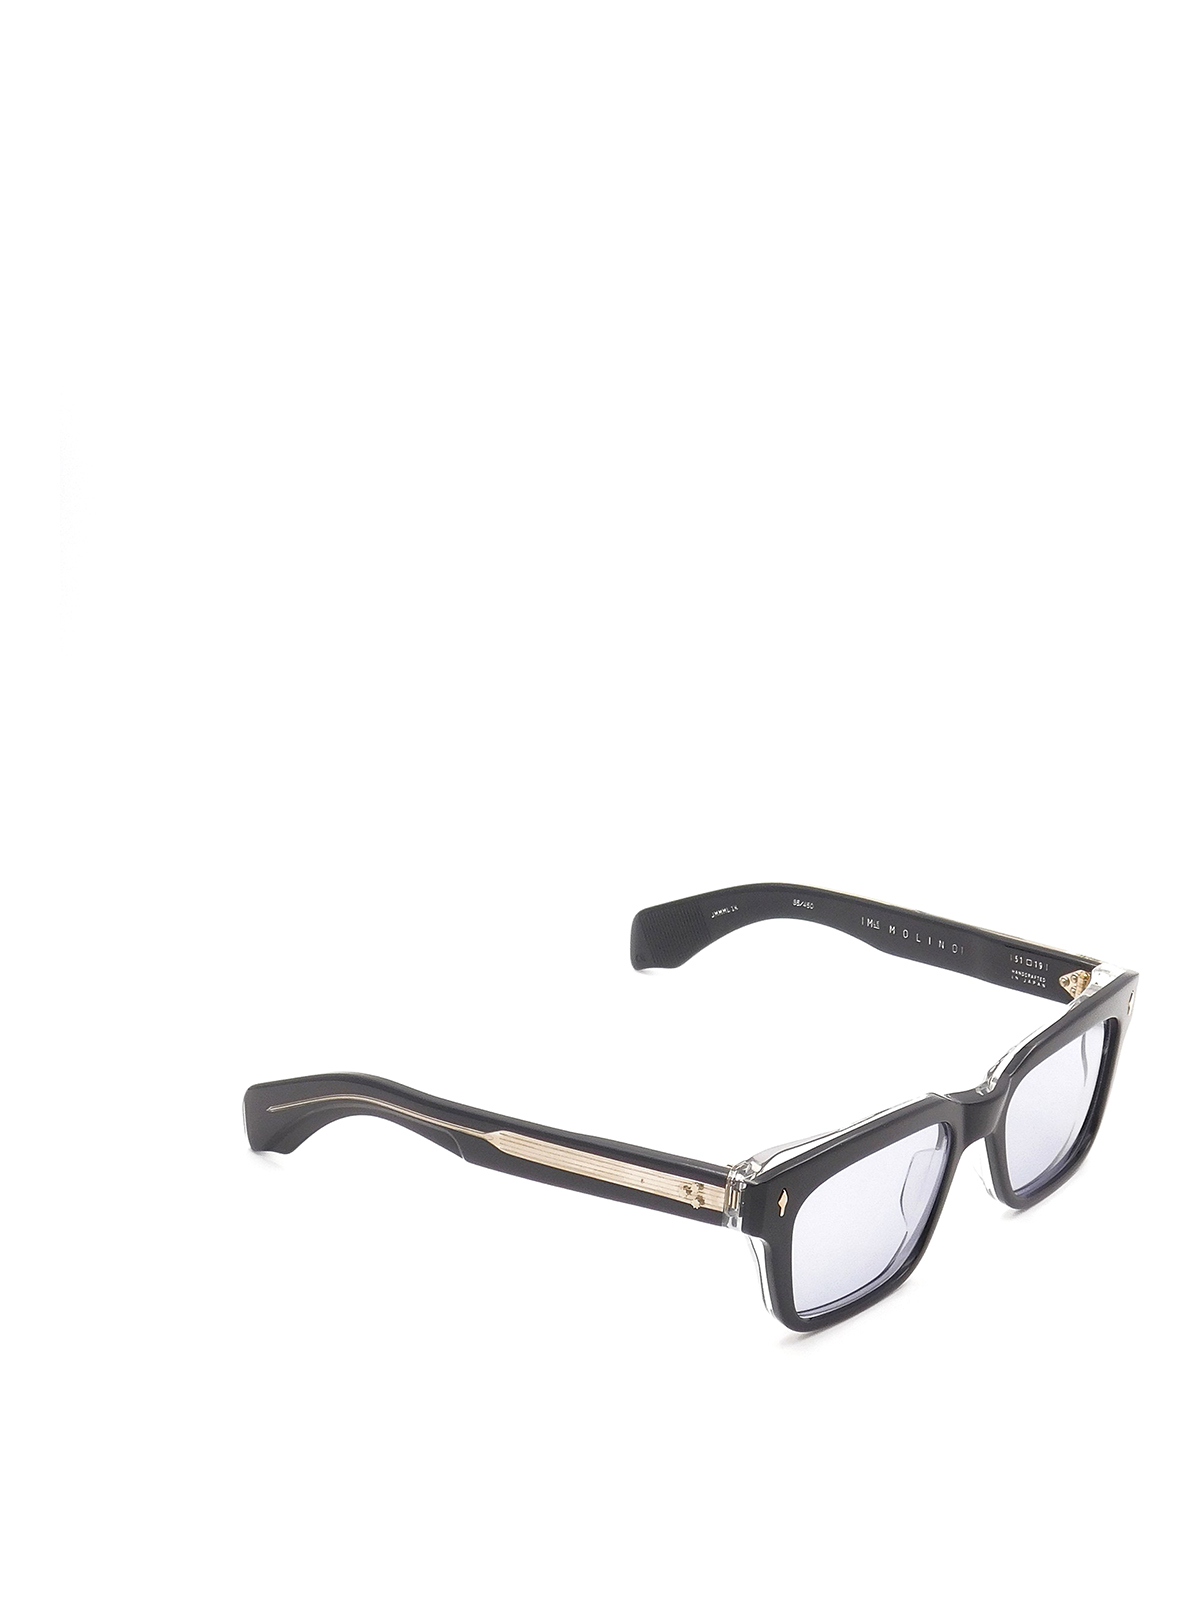 Jacques Marie Mage Blue Lenses Black And Gold Sunglasses